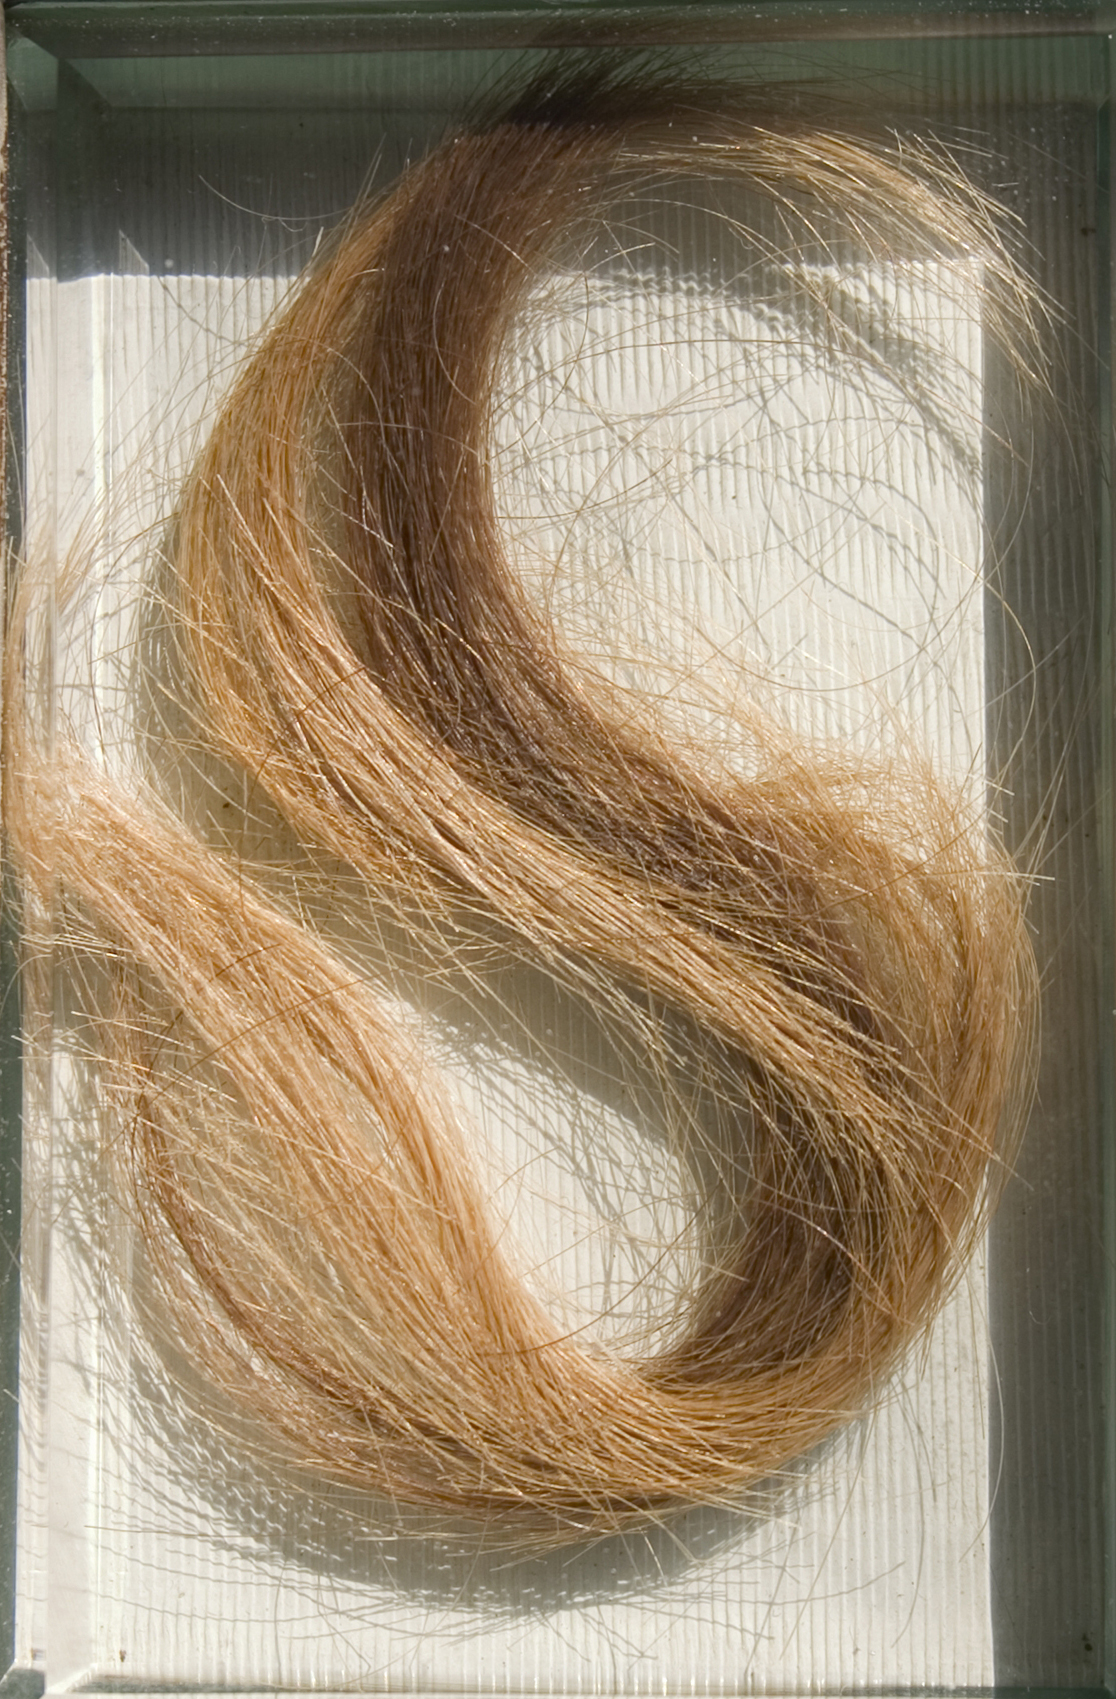 Image of Sebald Büheler: Dürer's lock of hair, 1559–1871 (mounting by Edward von Steinles, about 1871), borrowed from Gemäldegalerie der Akademie der Bildenden Künste Vienna.